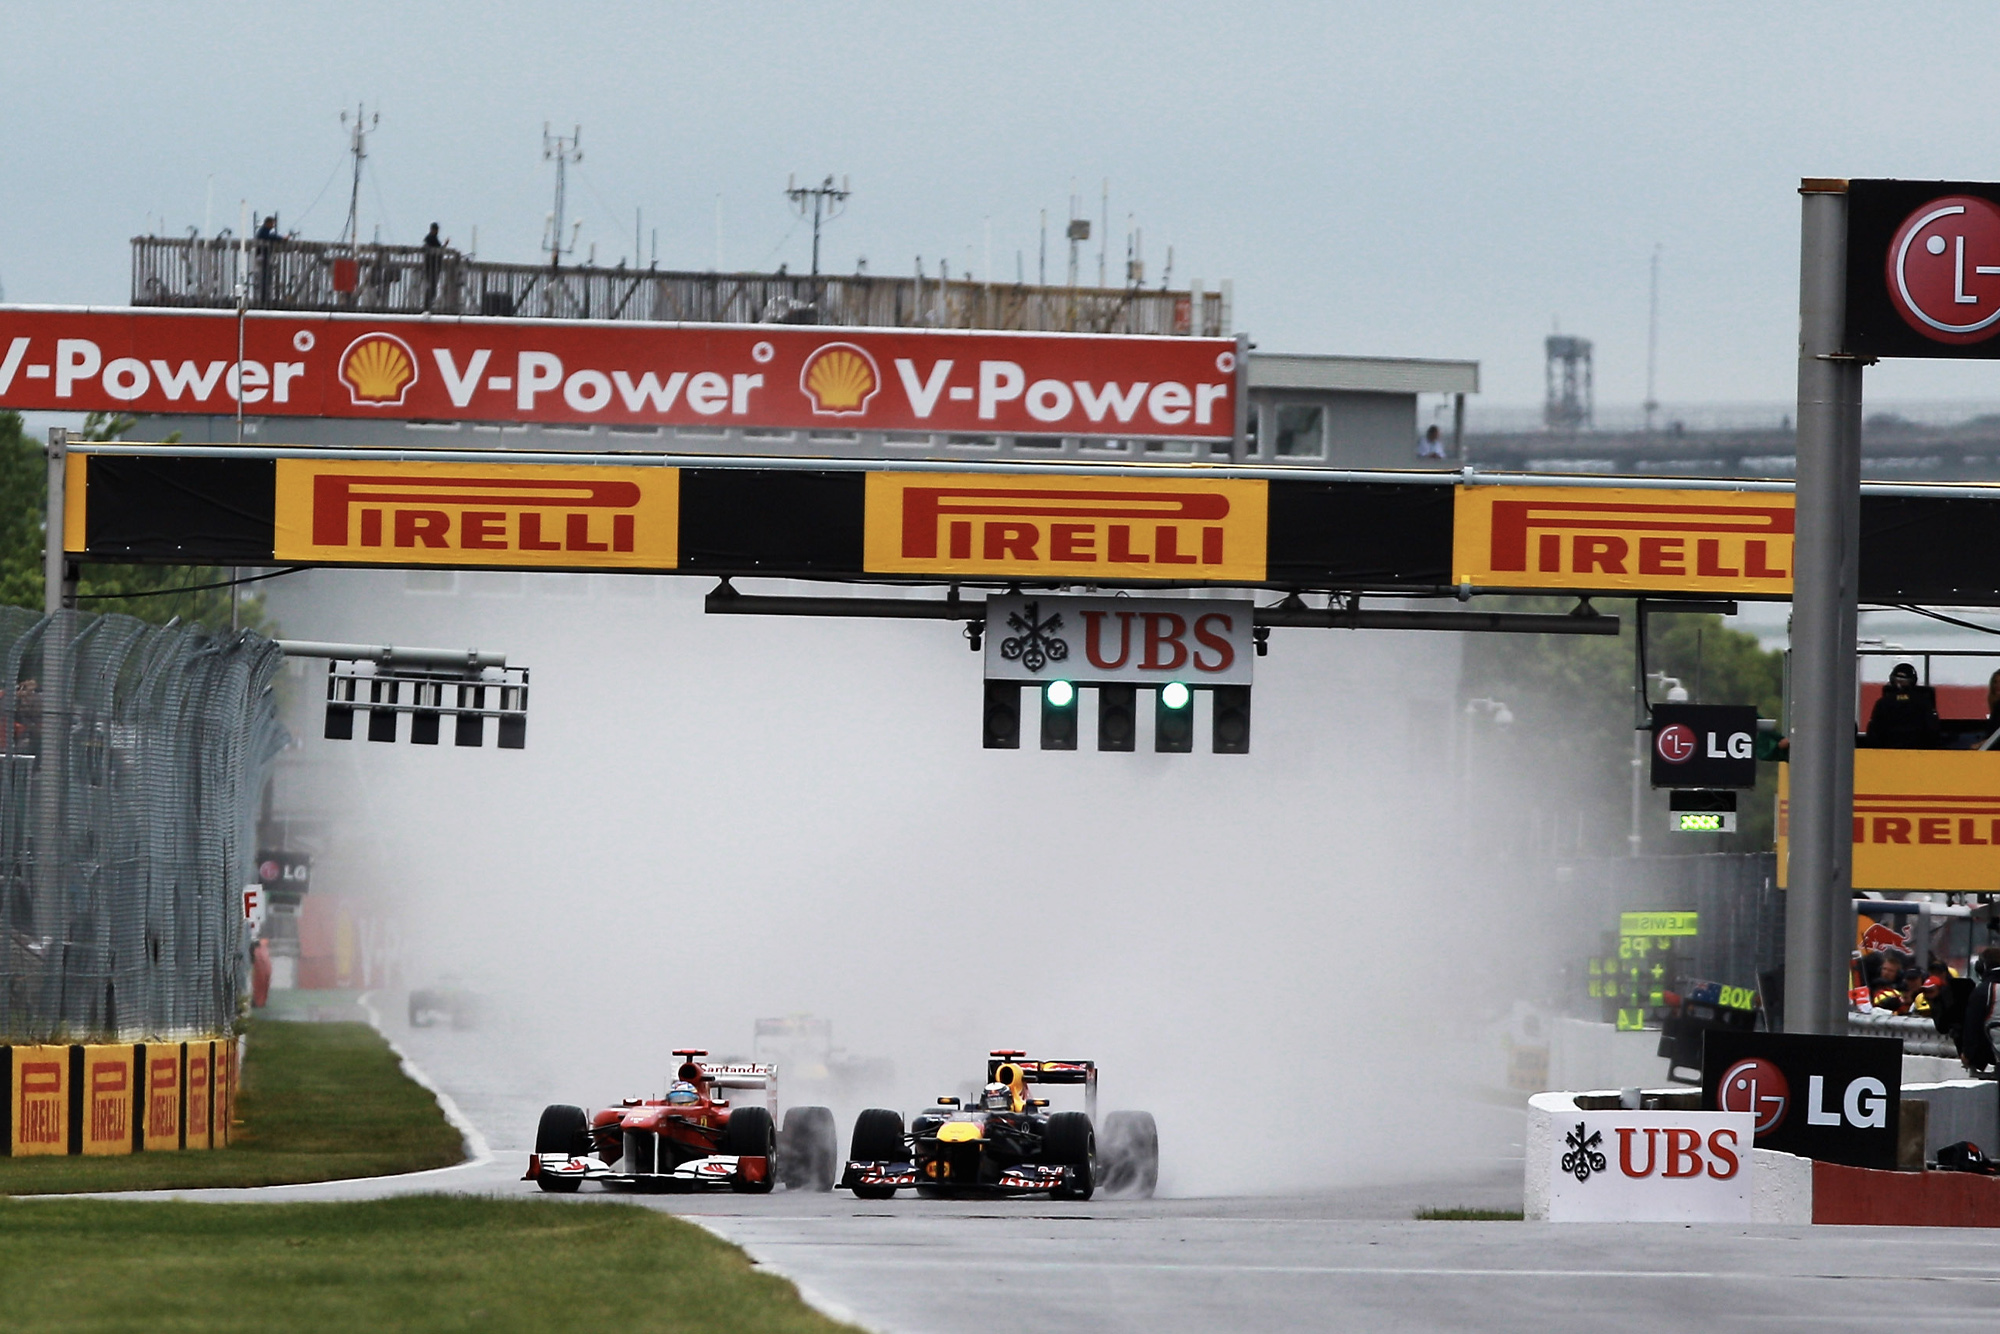 2011 Canadian grand prix start